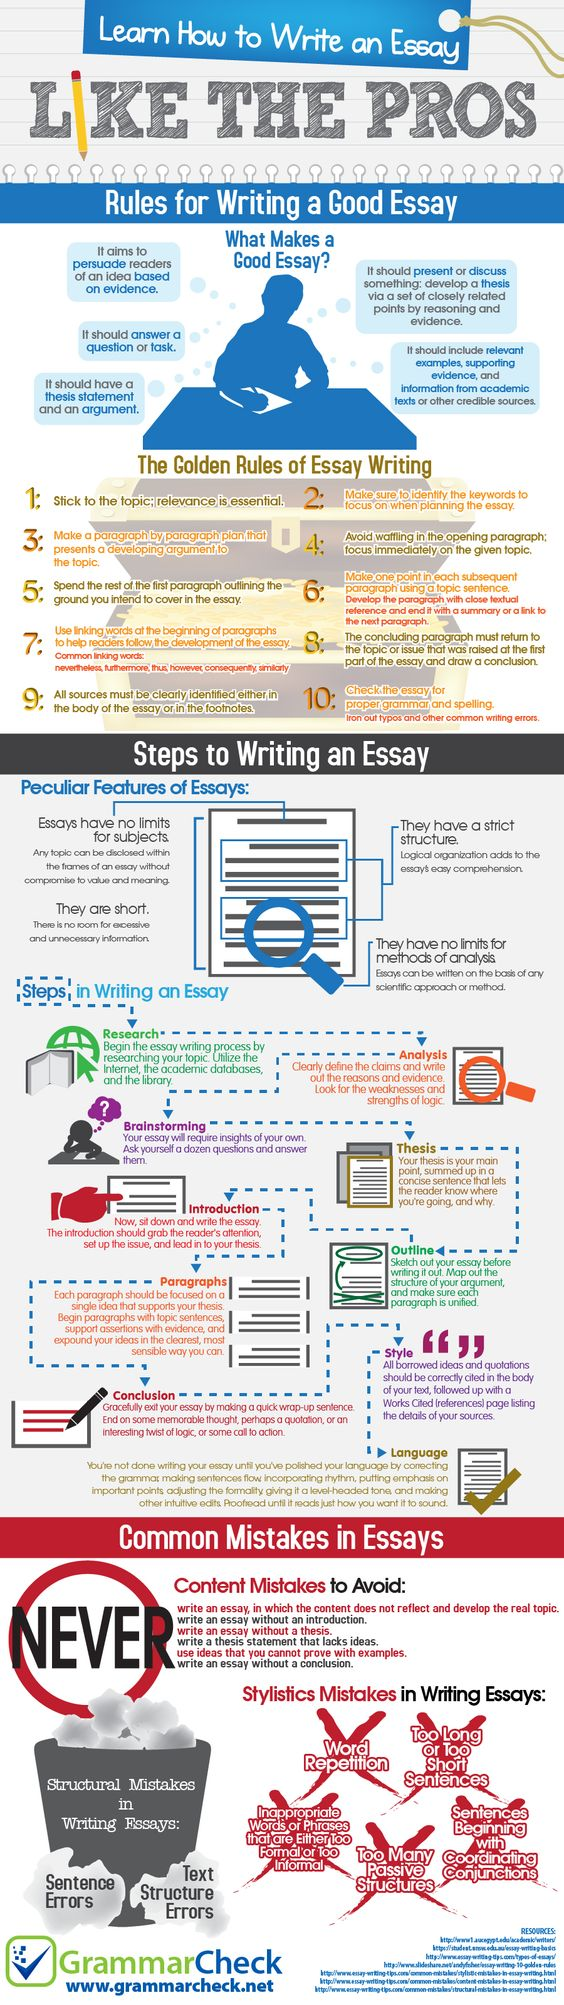 College Essays  College Application Essays   My family essay example How to Write an Essay